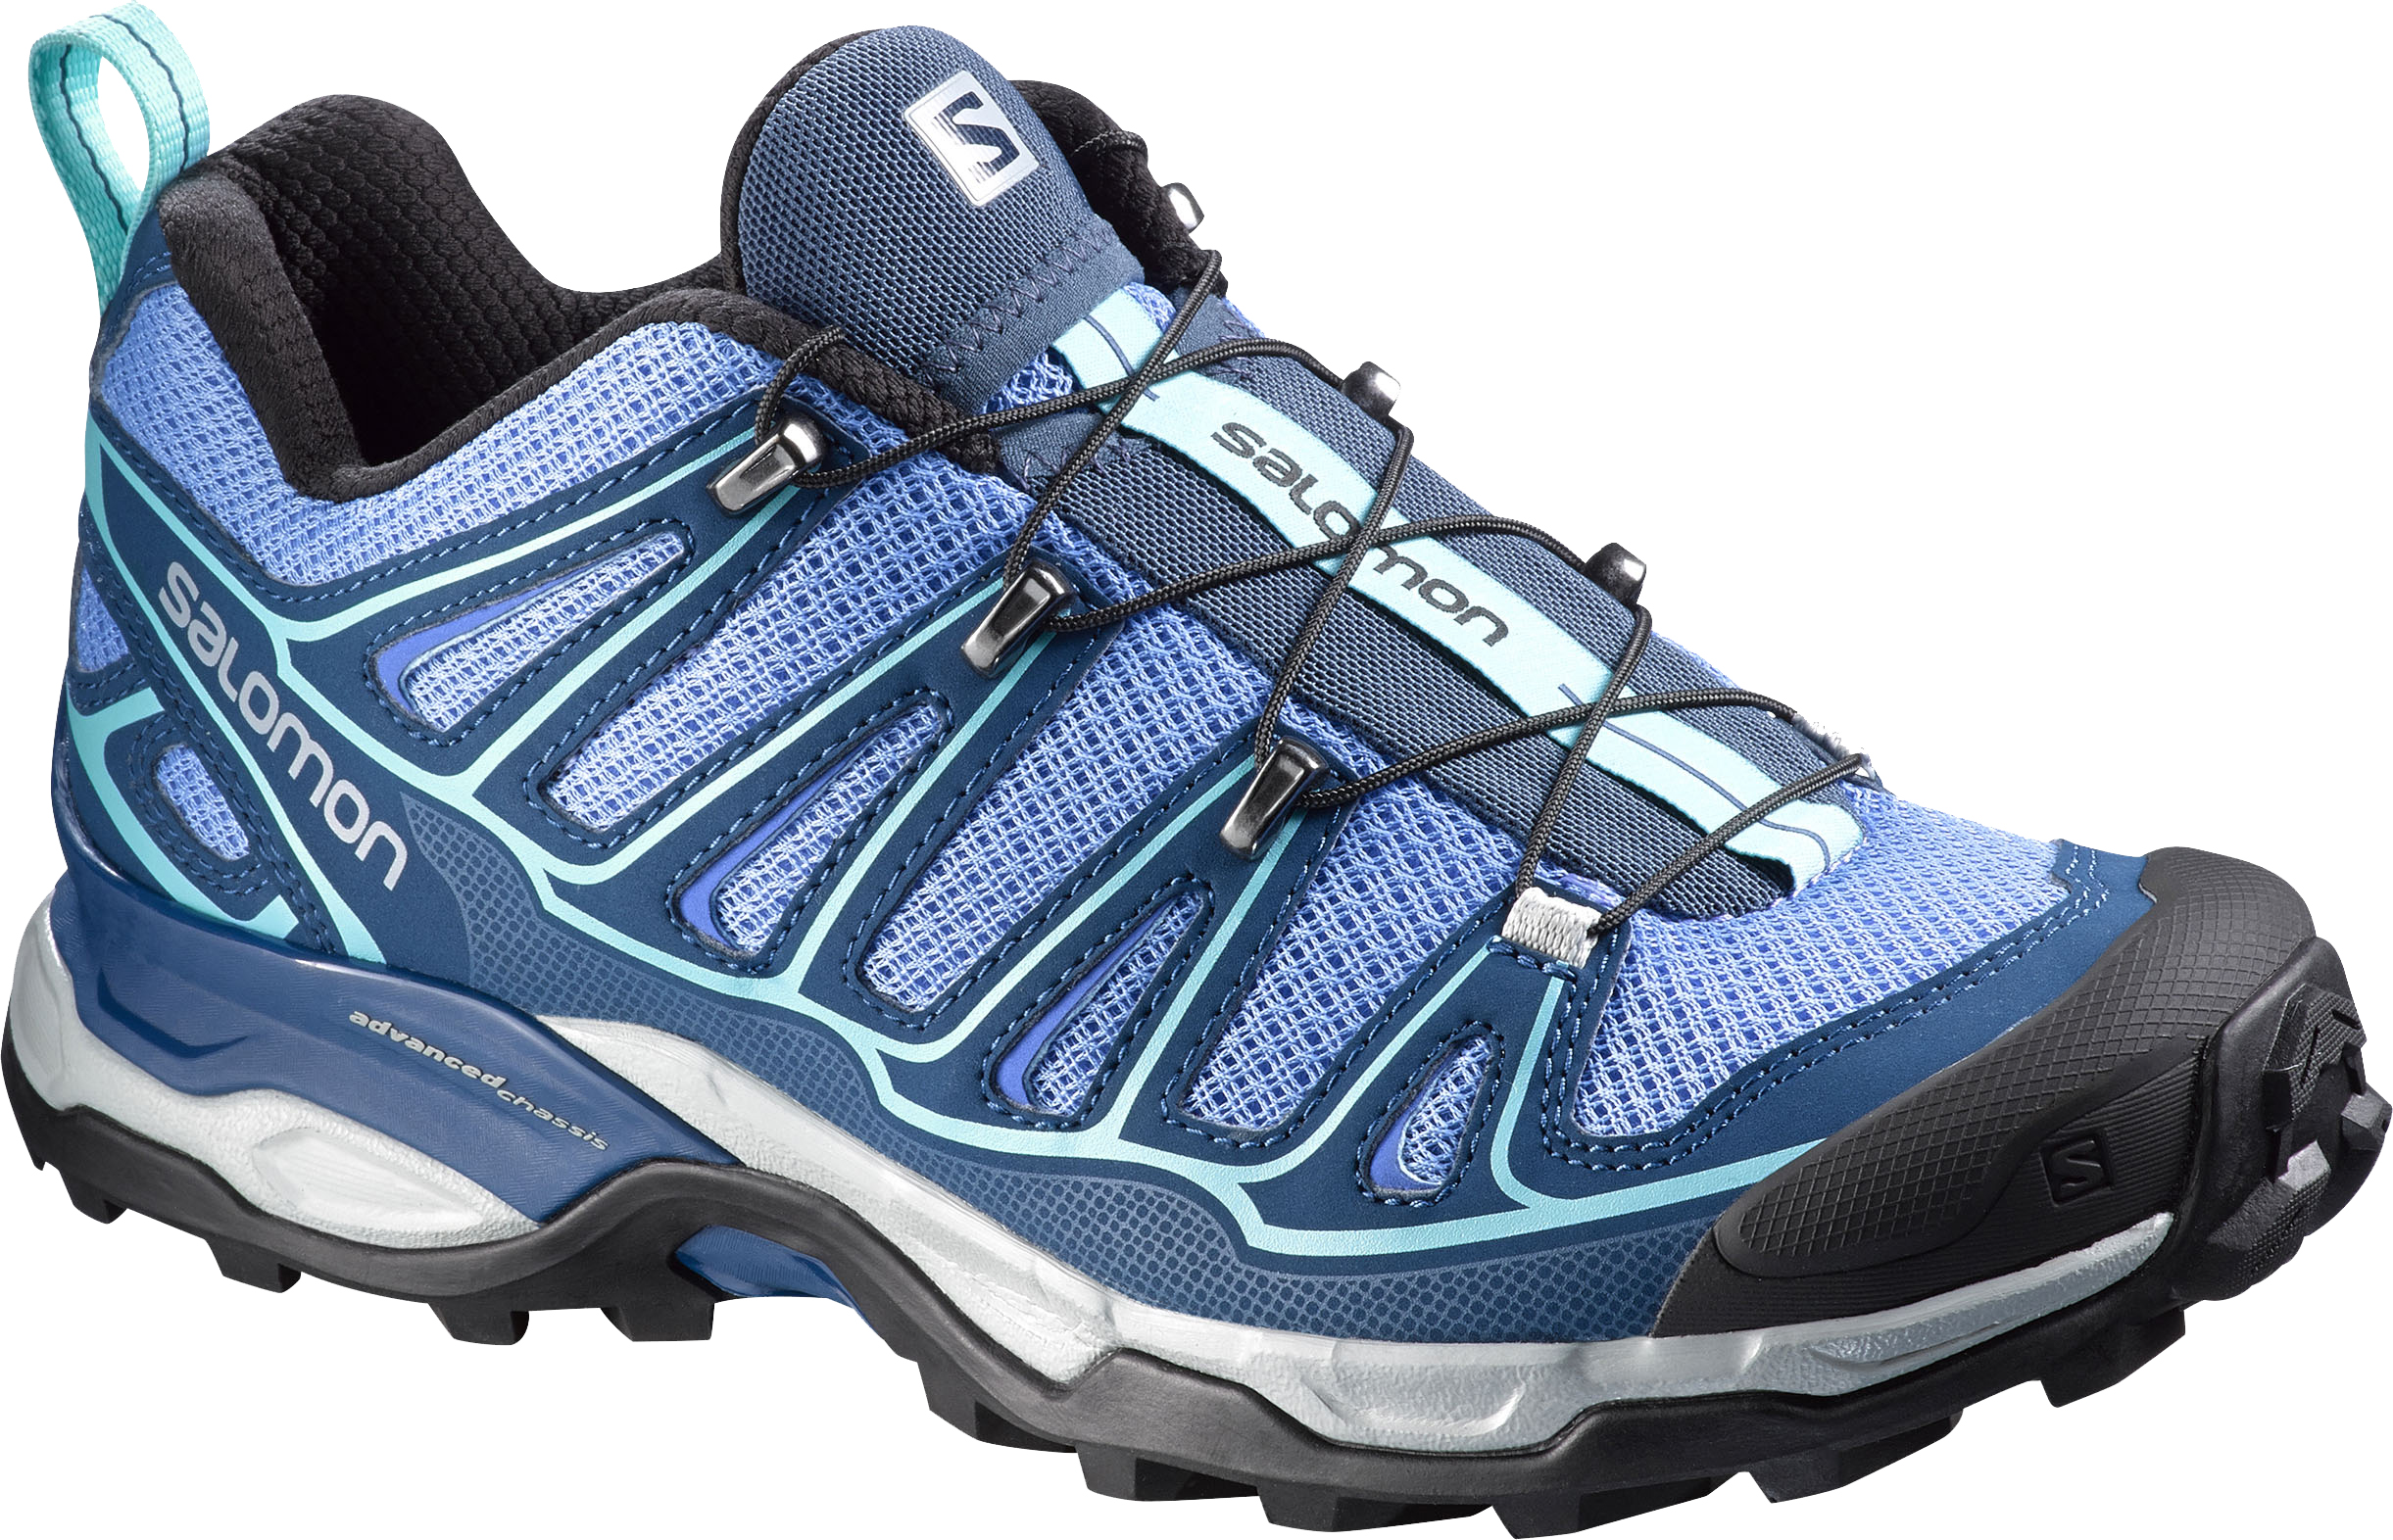 0a5eca57493 Salomon X-Ultra 2 Light Trail Shoes - Women s